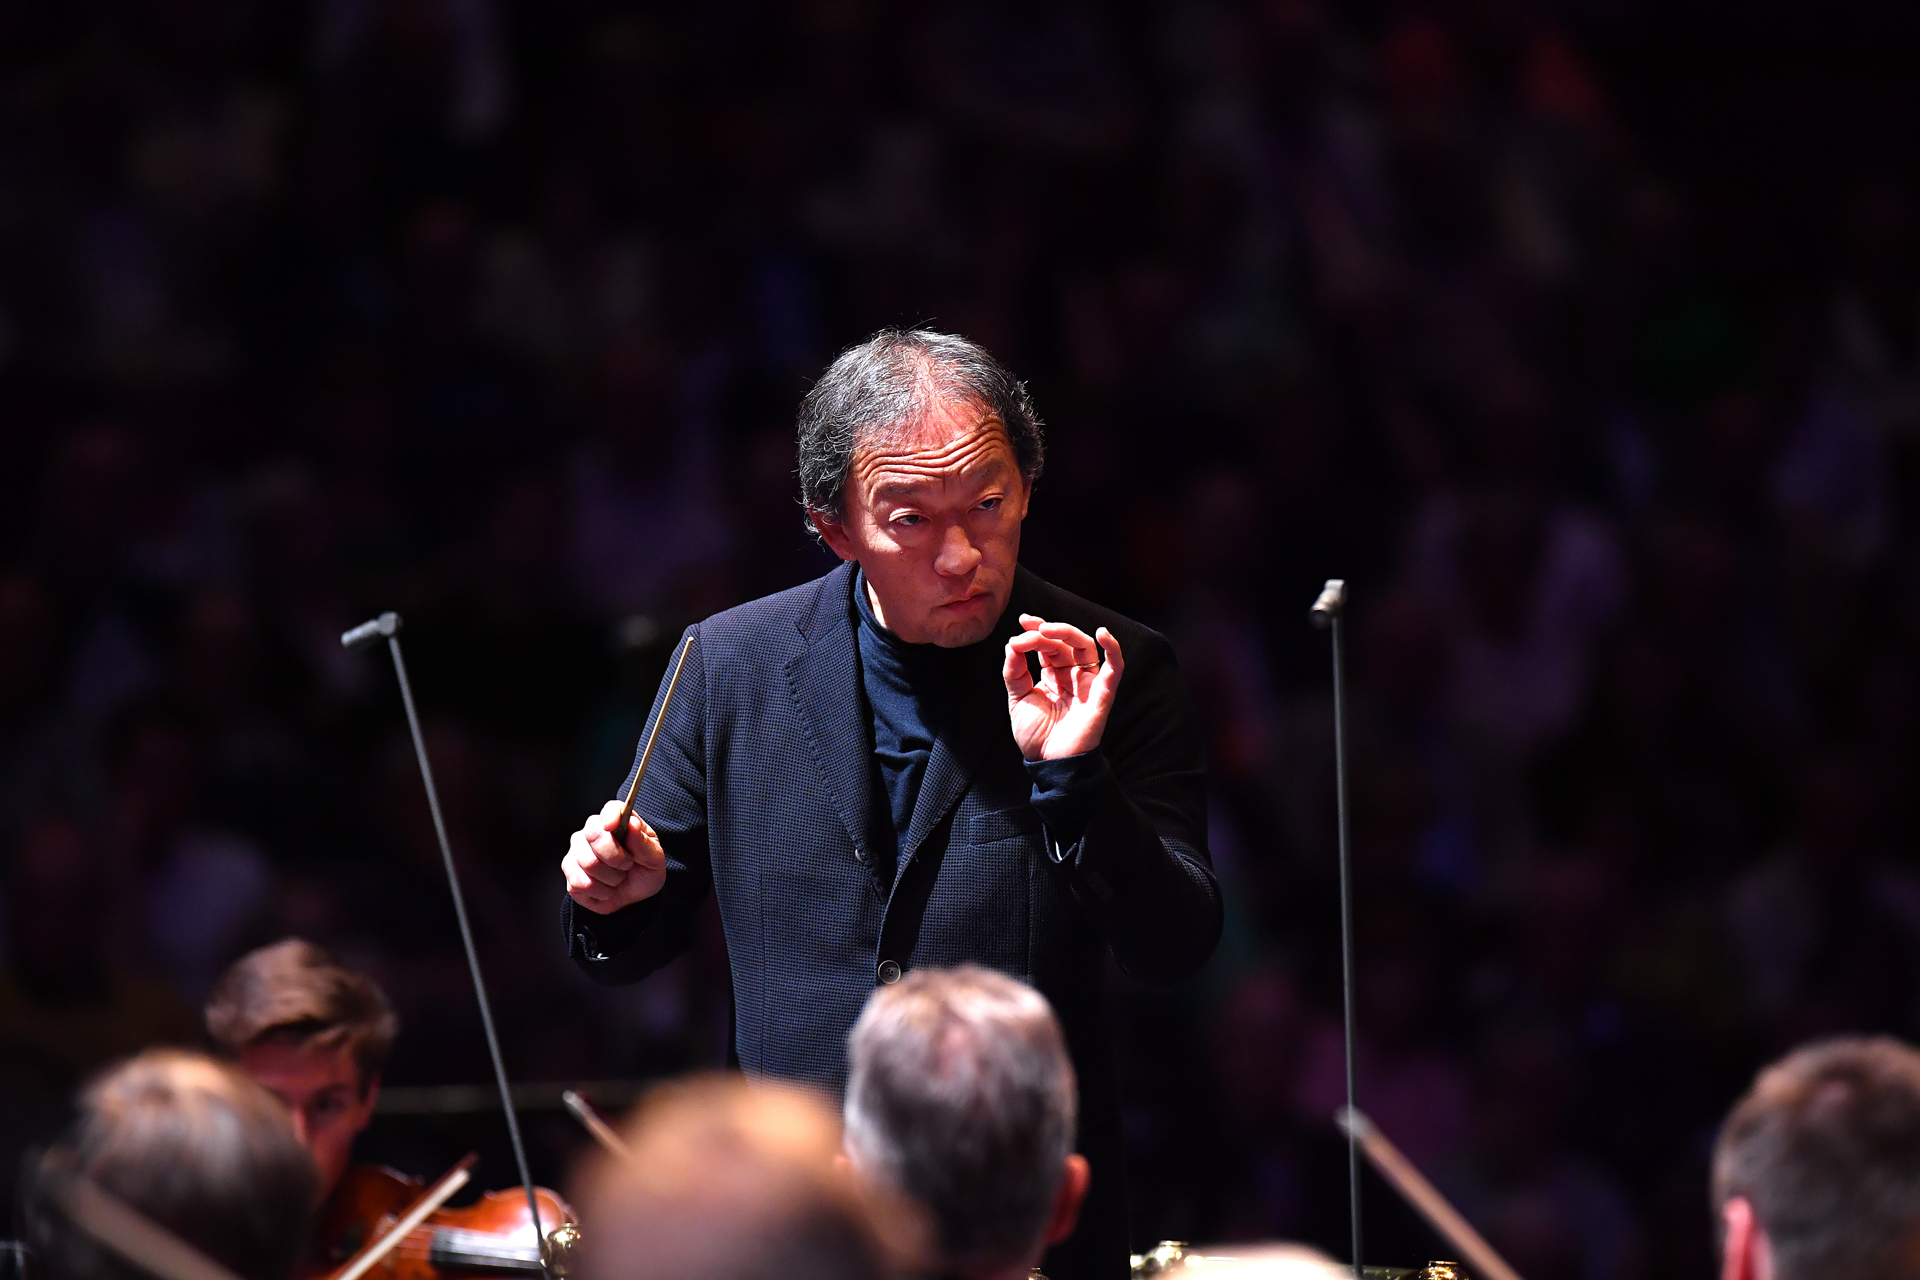 Prom 63: Wang, Staatskapelle Dresden, Chung review – private